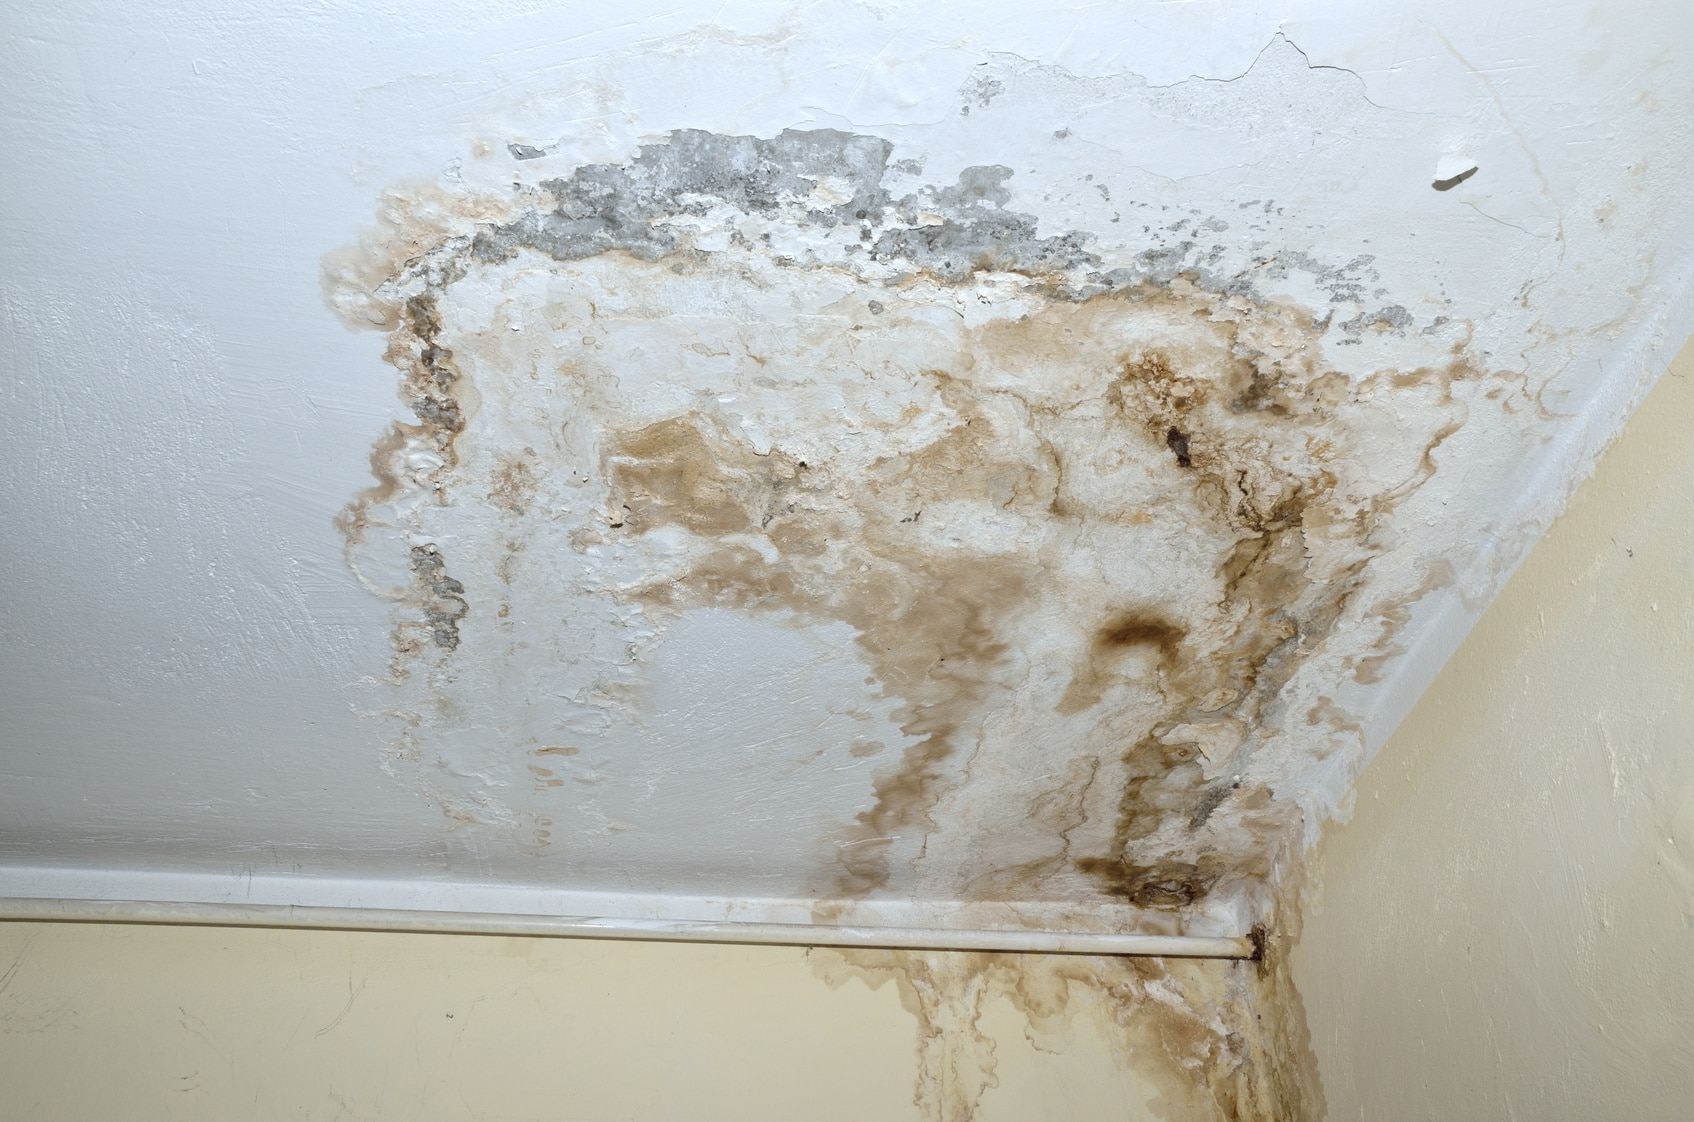 Do You Recognize The Early Signs Of Mold Damage?